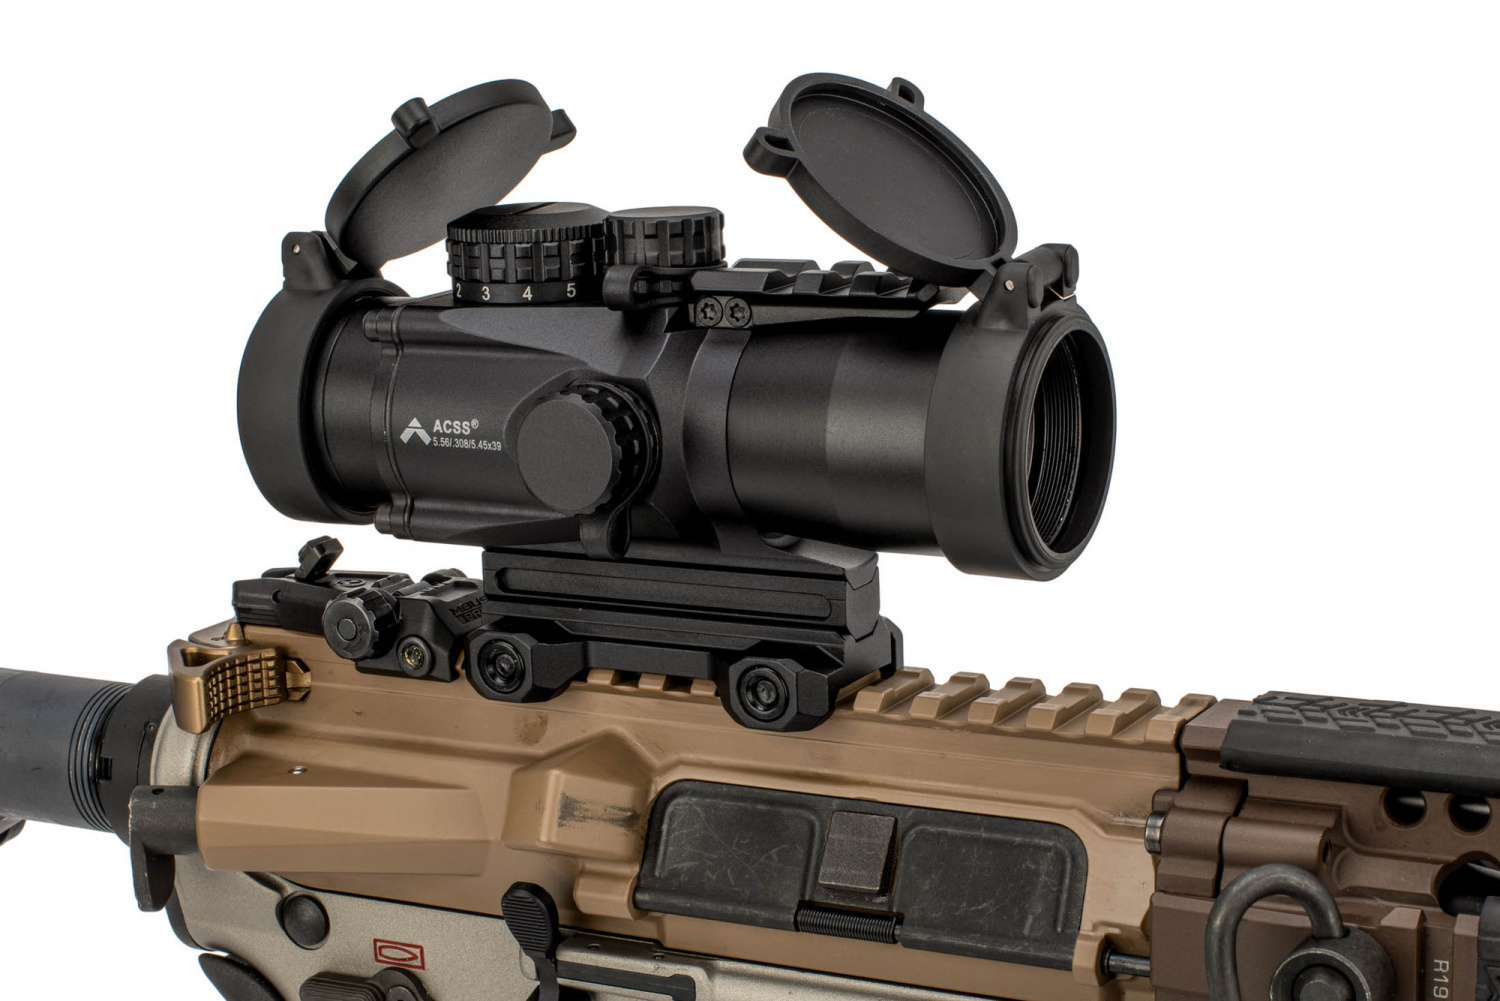 The 3x SLx is offered with PAO's ACSS 5.56 CQB-M2 chevron reticle.